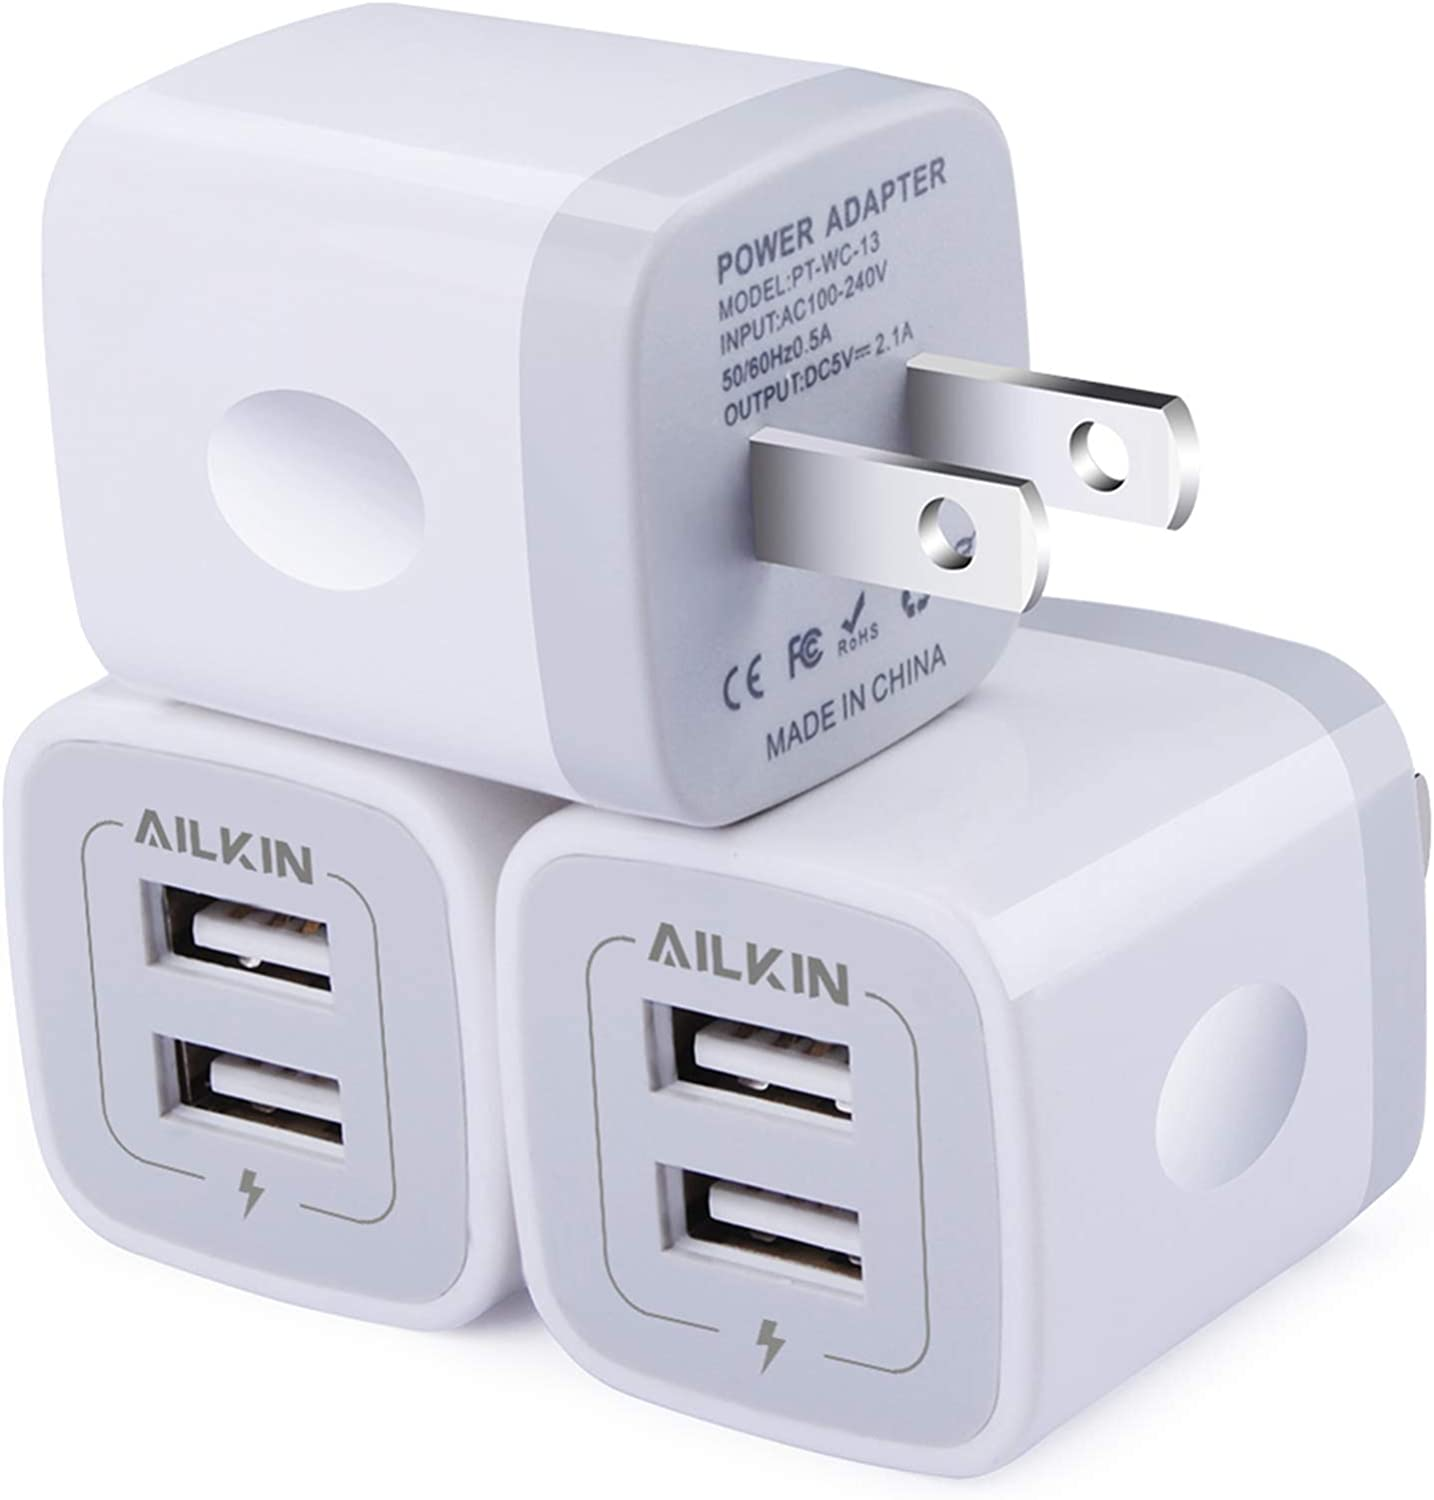 Amazon Com Wall Charger 3pack 5v 2 1amp Ailkin 2 Port Usb Wall Charger Home Travel Plug Power Ac Adapter Fast Charging Block Cube For Iphone 12 Se 11pro Max Xs Xr 8 7 Plus Samsung